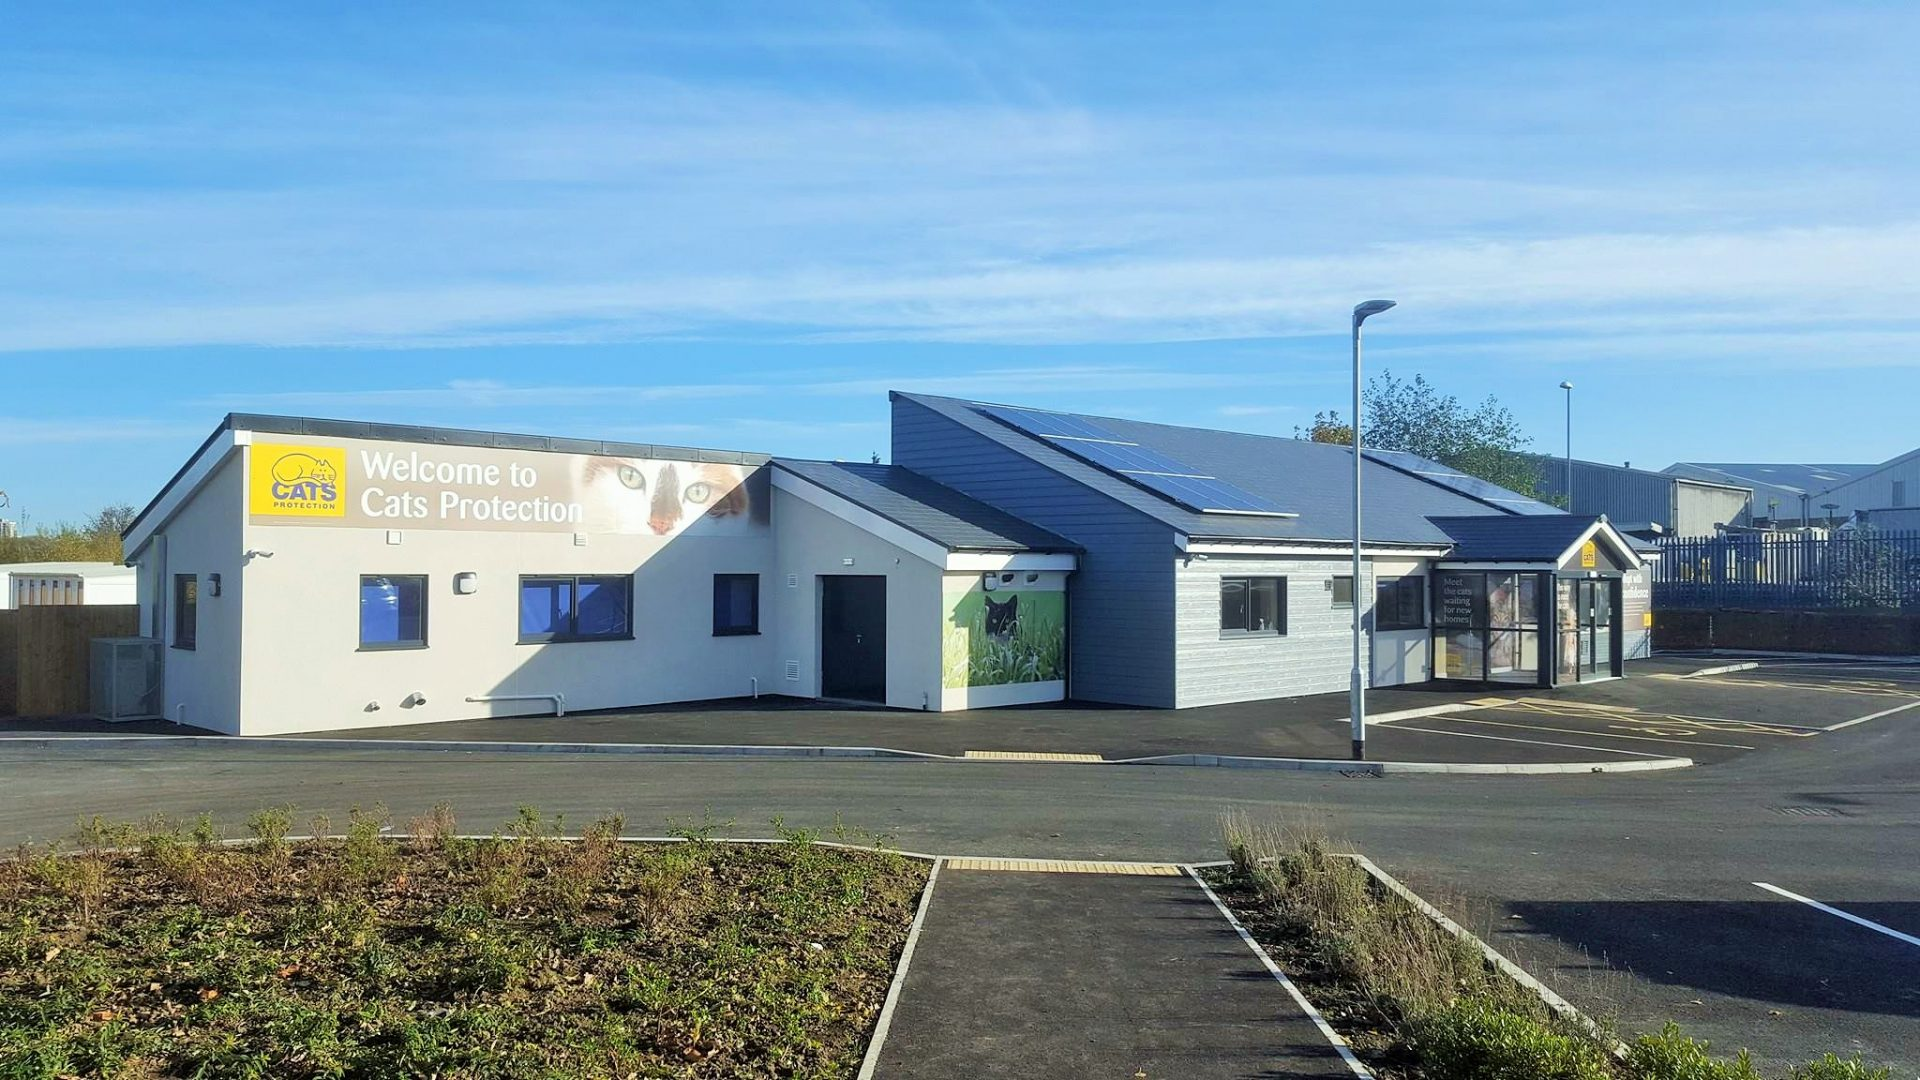 Puuuurfect Grand Opening For AKA's Recently Completed Cats Protection Project On Tyneside